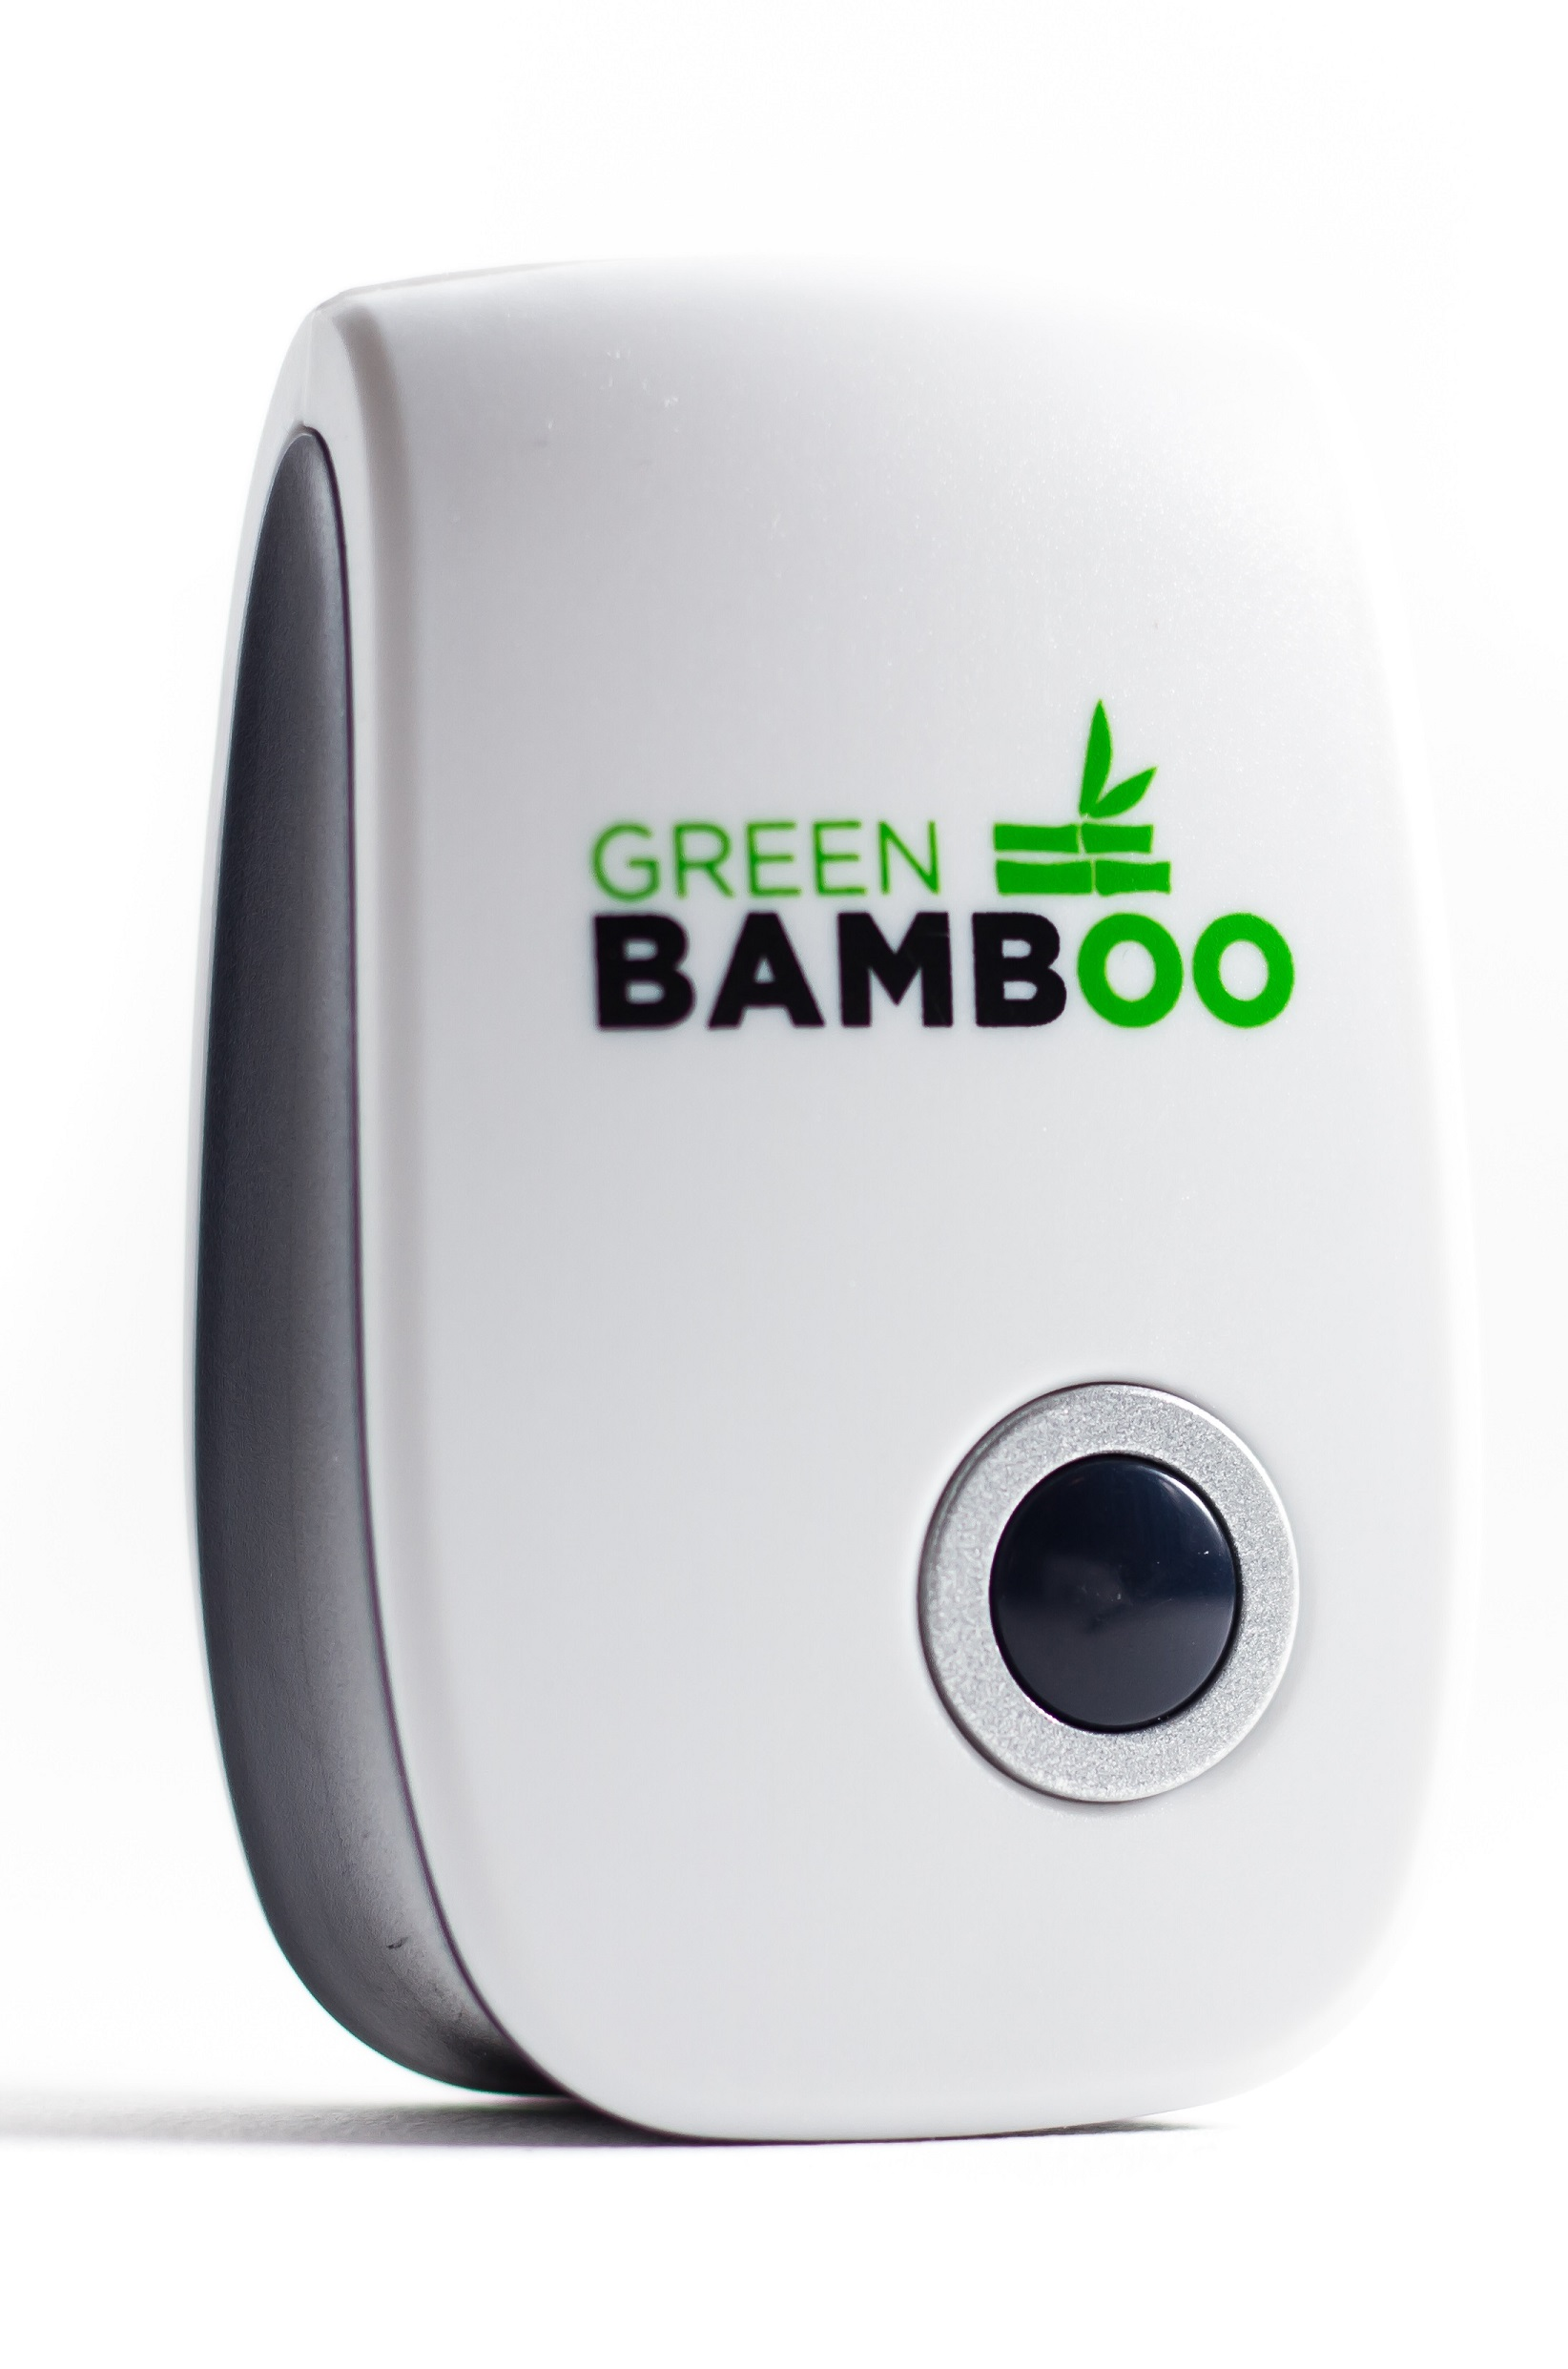 greenbamboo ultrasons souris